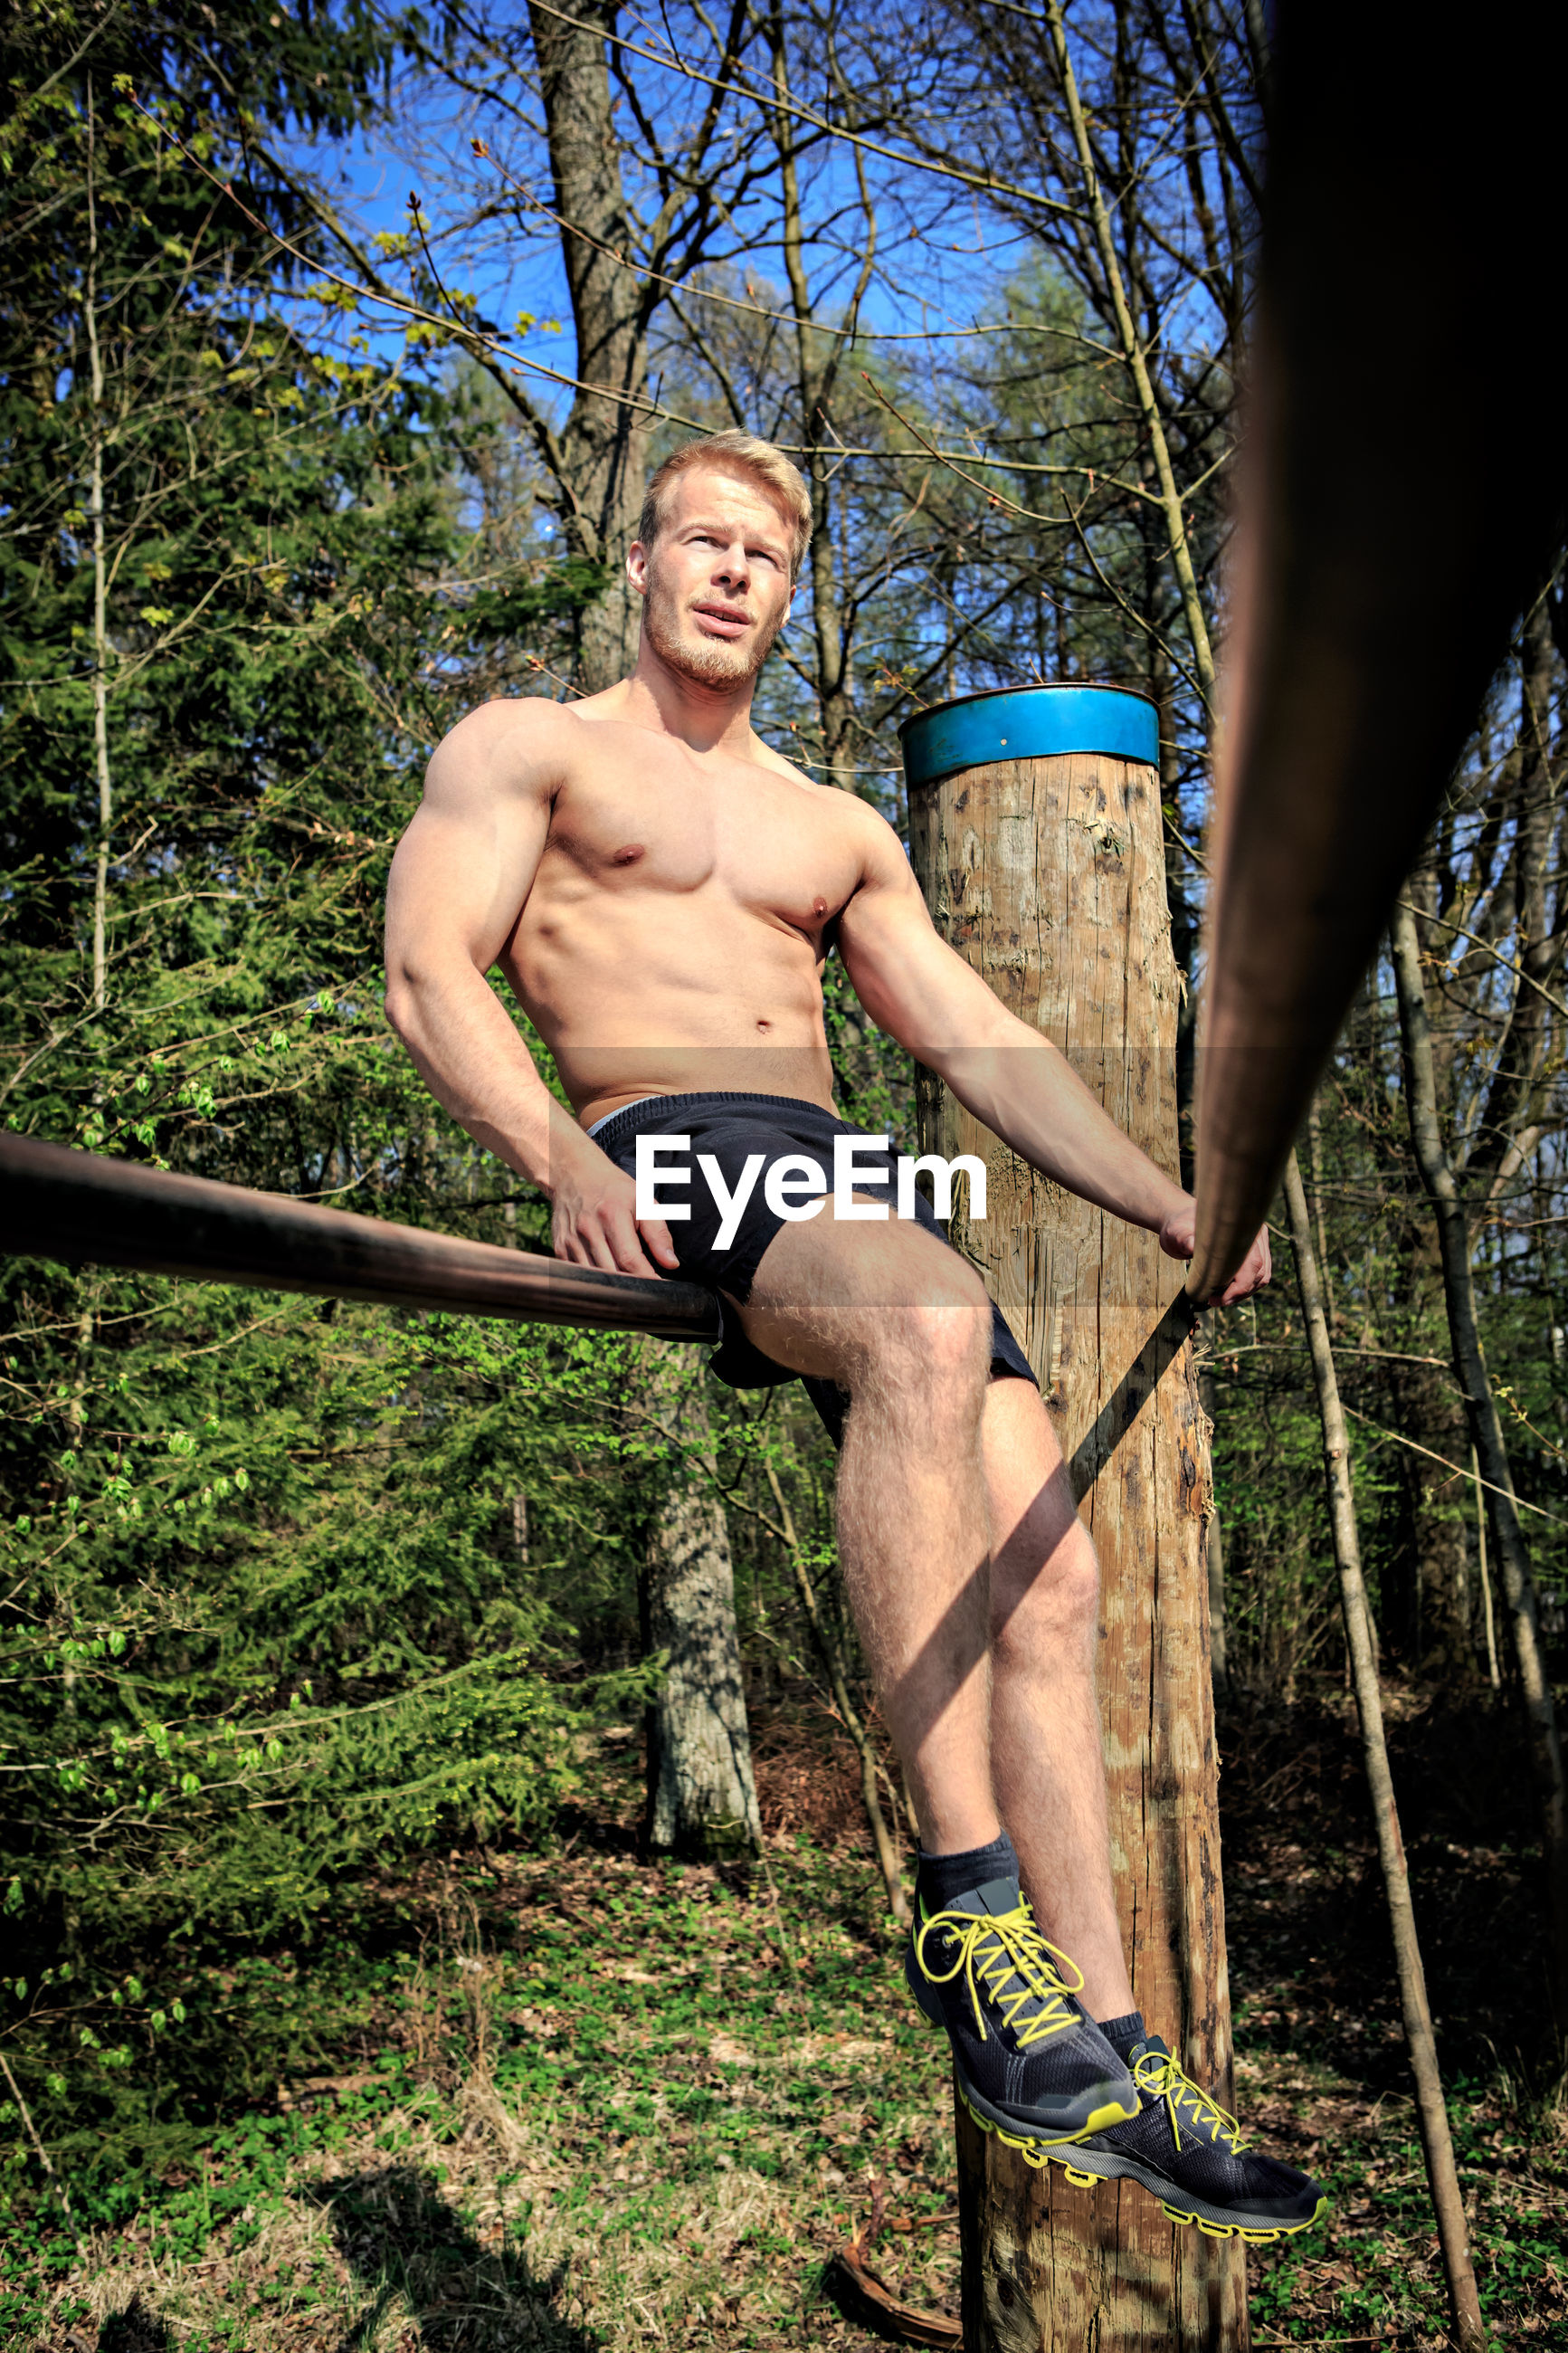 Low angle view of shirtless man sitting on railing in forest